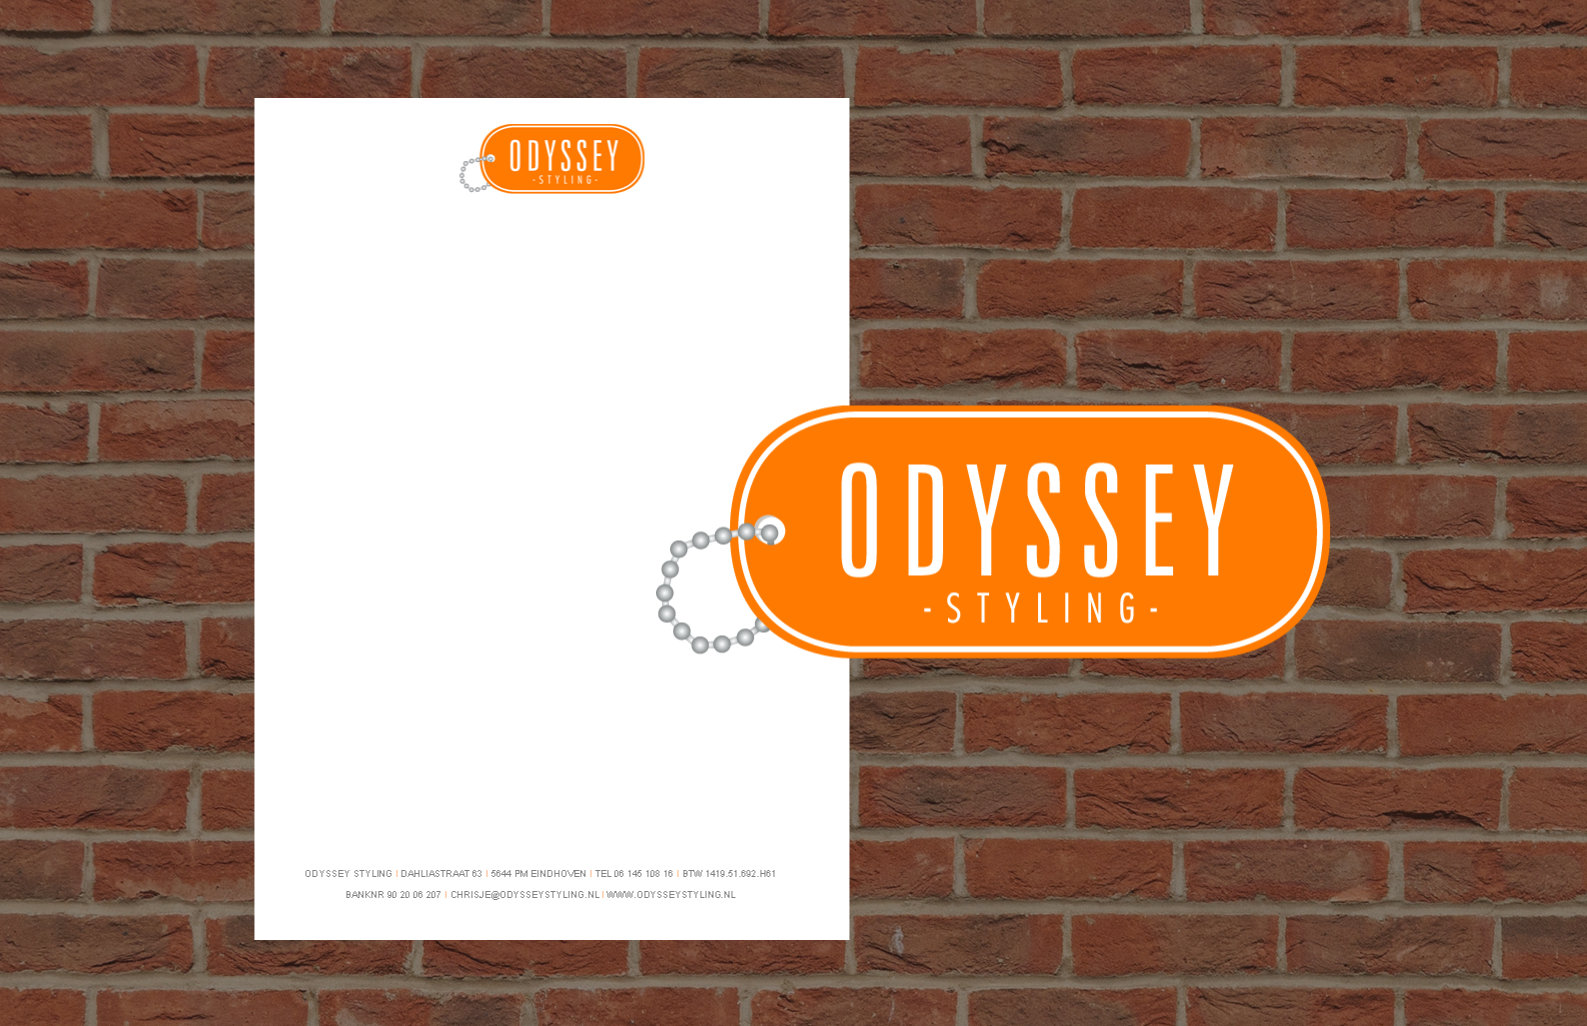 Odyssey styling briefpapier